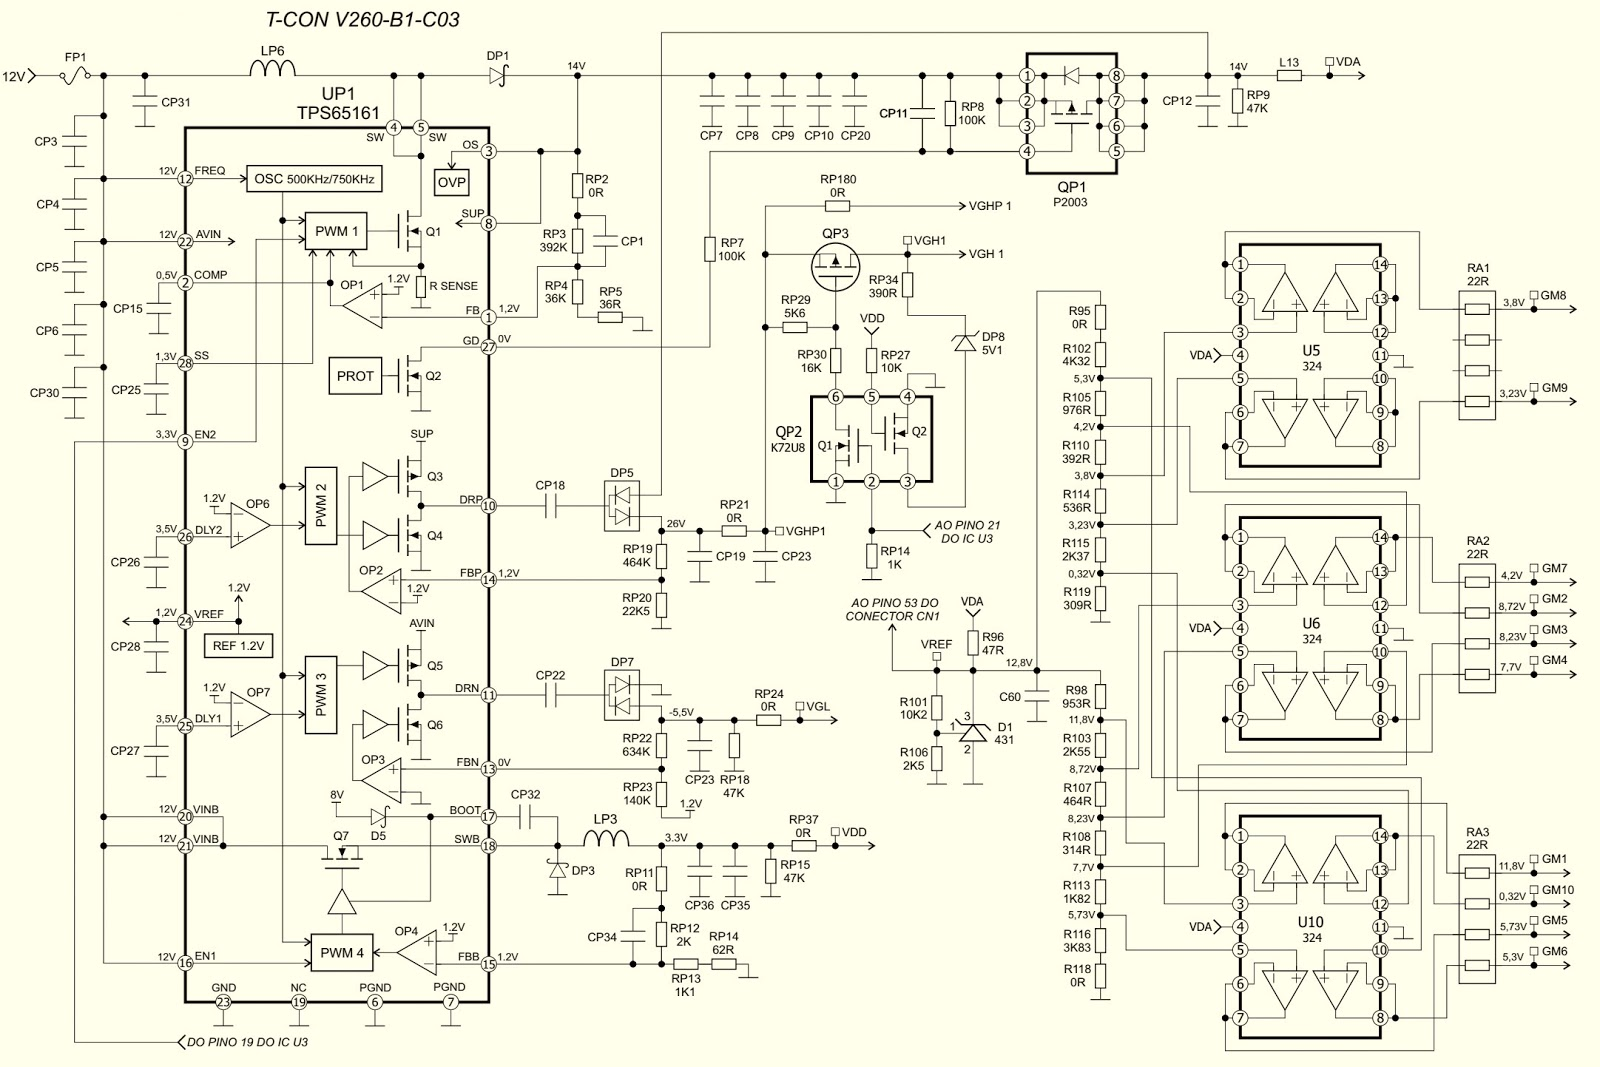 lg 26lc55 lcd tv t con board v260 b1 c03 circuit diagram led tv schematic tcon board schematic or [ 1600 x 1067 Pixel ]